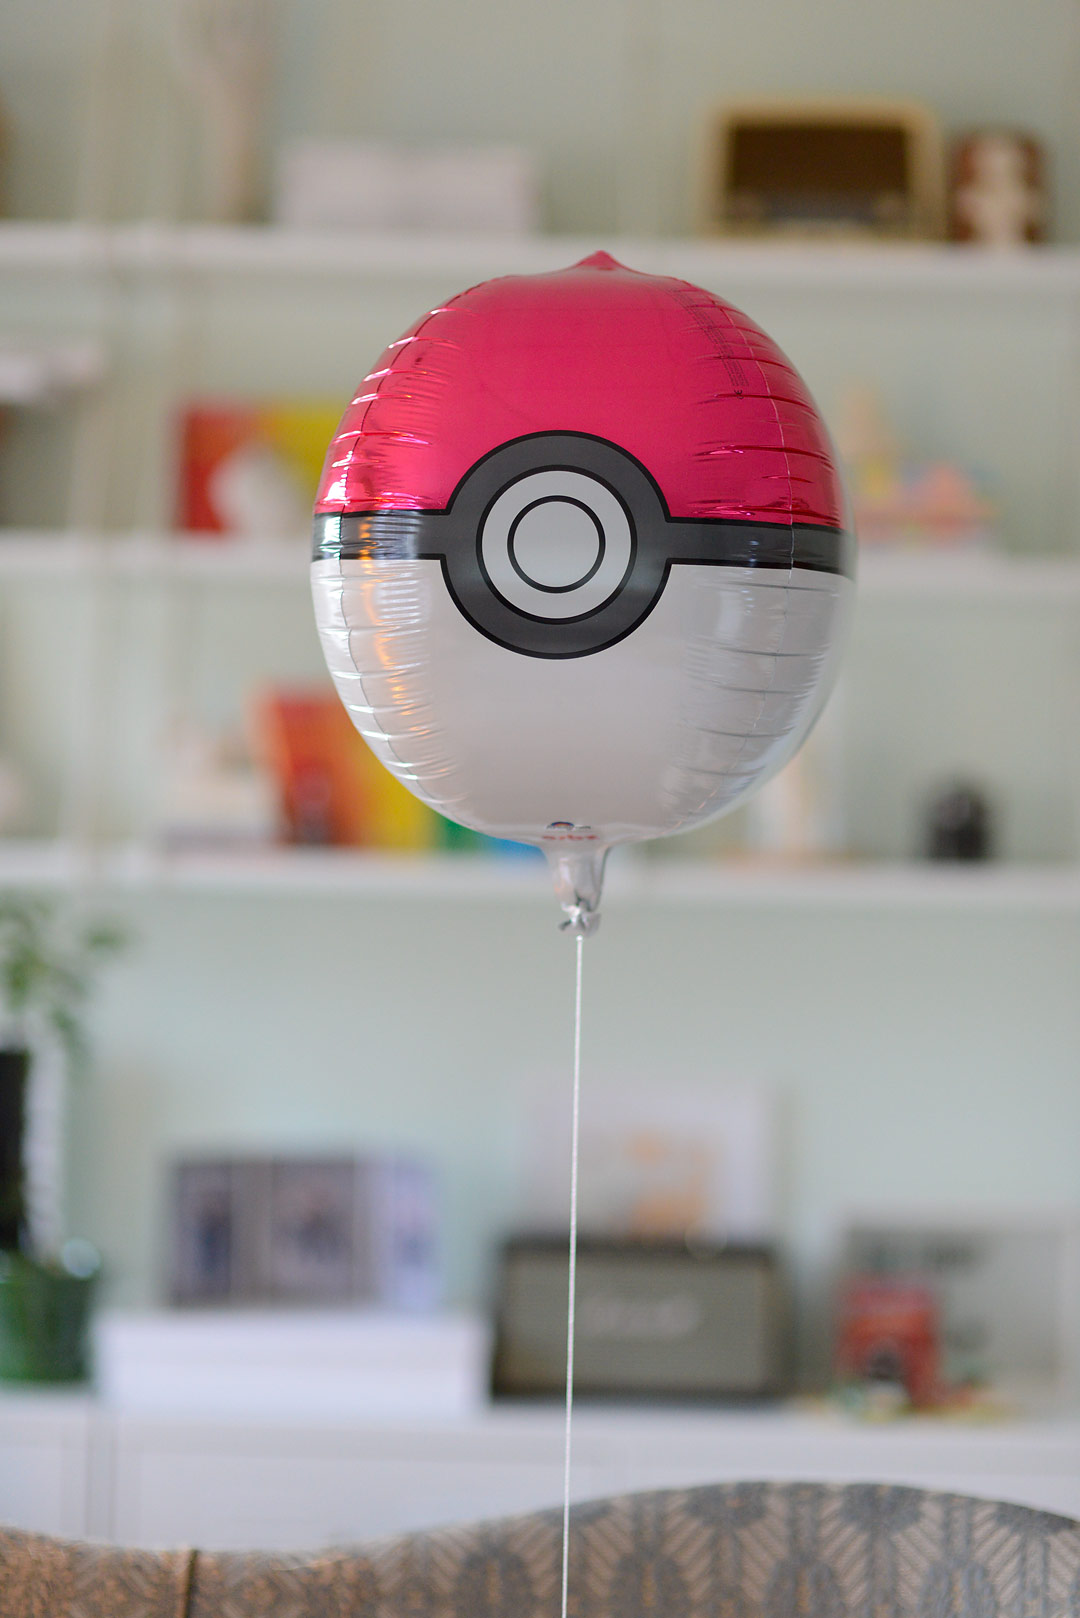 Pokemon pokeball balloon from somiana.fi